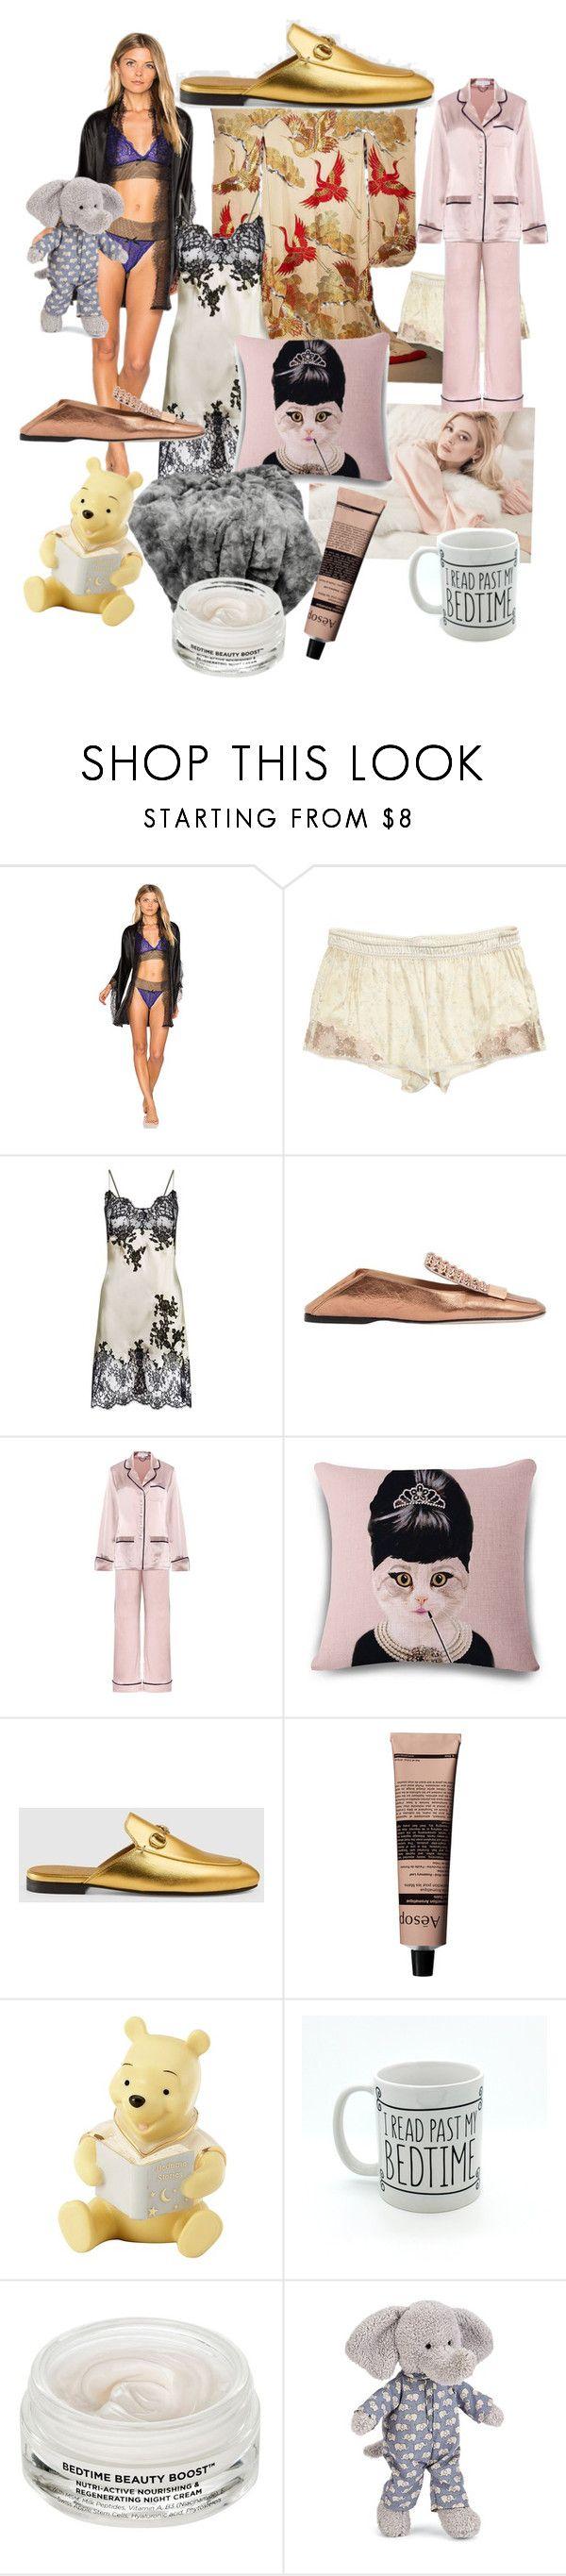 """Bedtime"" by princess-darjeeling ❤ liked on Polyvore featuring KissKill, Calypso St. Barth, Marjolaine, Sergio Rossi, Olivia von Halle, Gucci, Aesop, Lenox, Oskia and Jellycat"